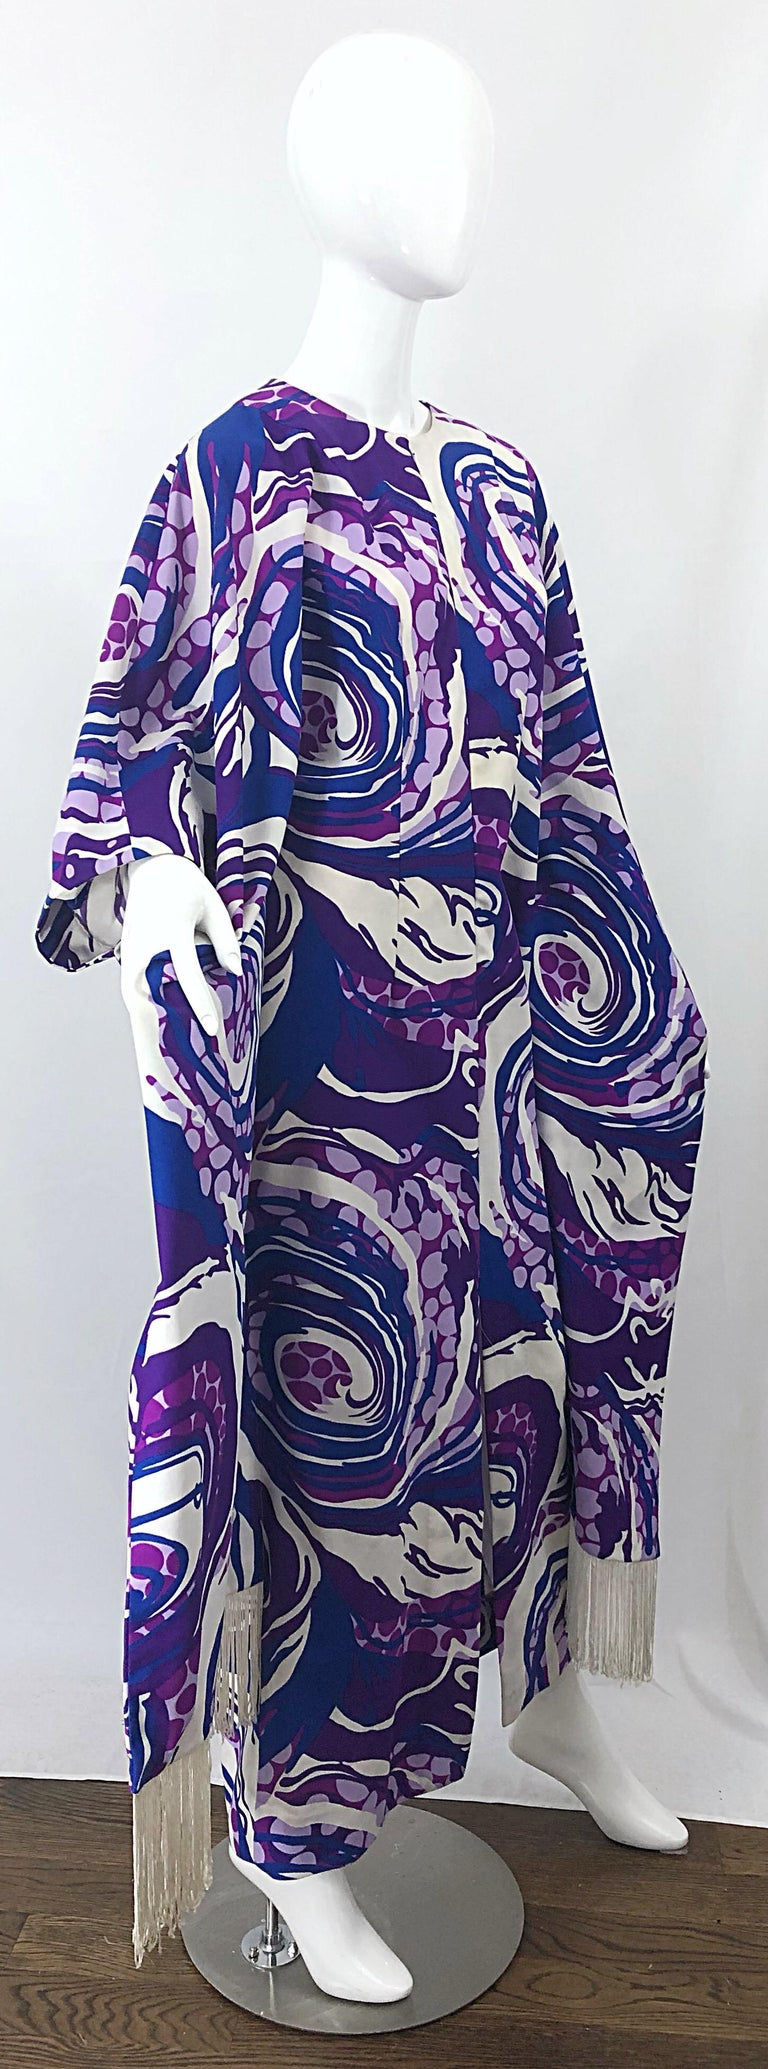 Amazing 1970s Fringed Purple and Blue Abstract Swirl Print Vintage 70s Caftan For Sale 6